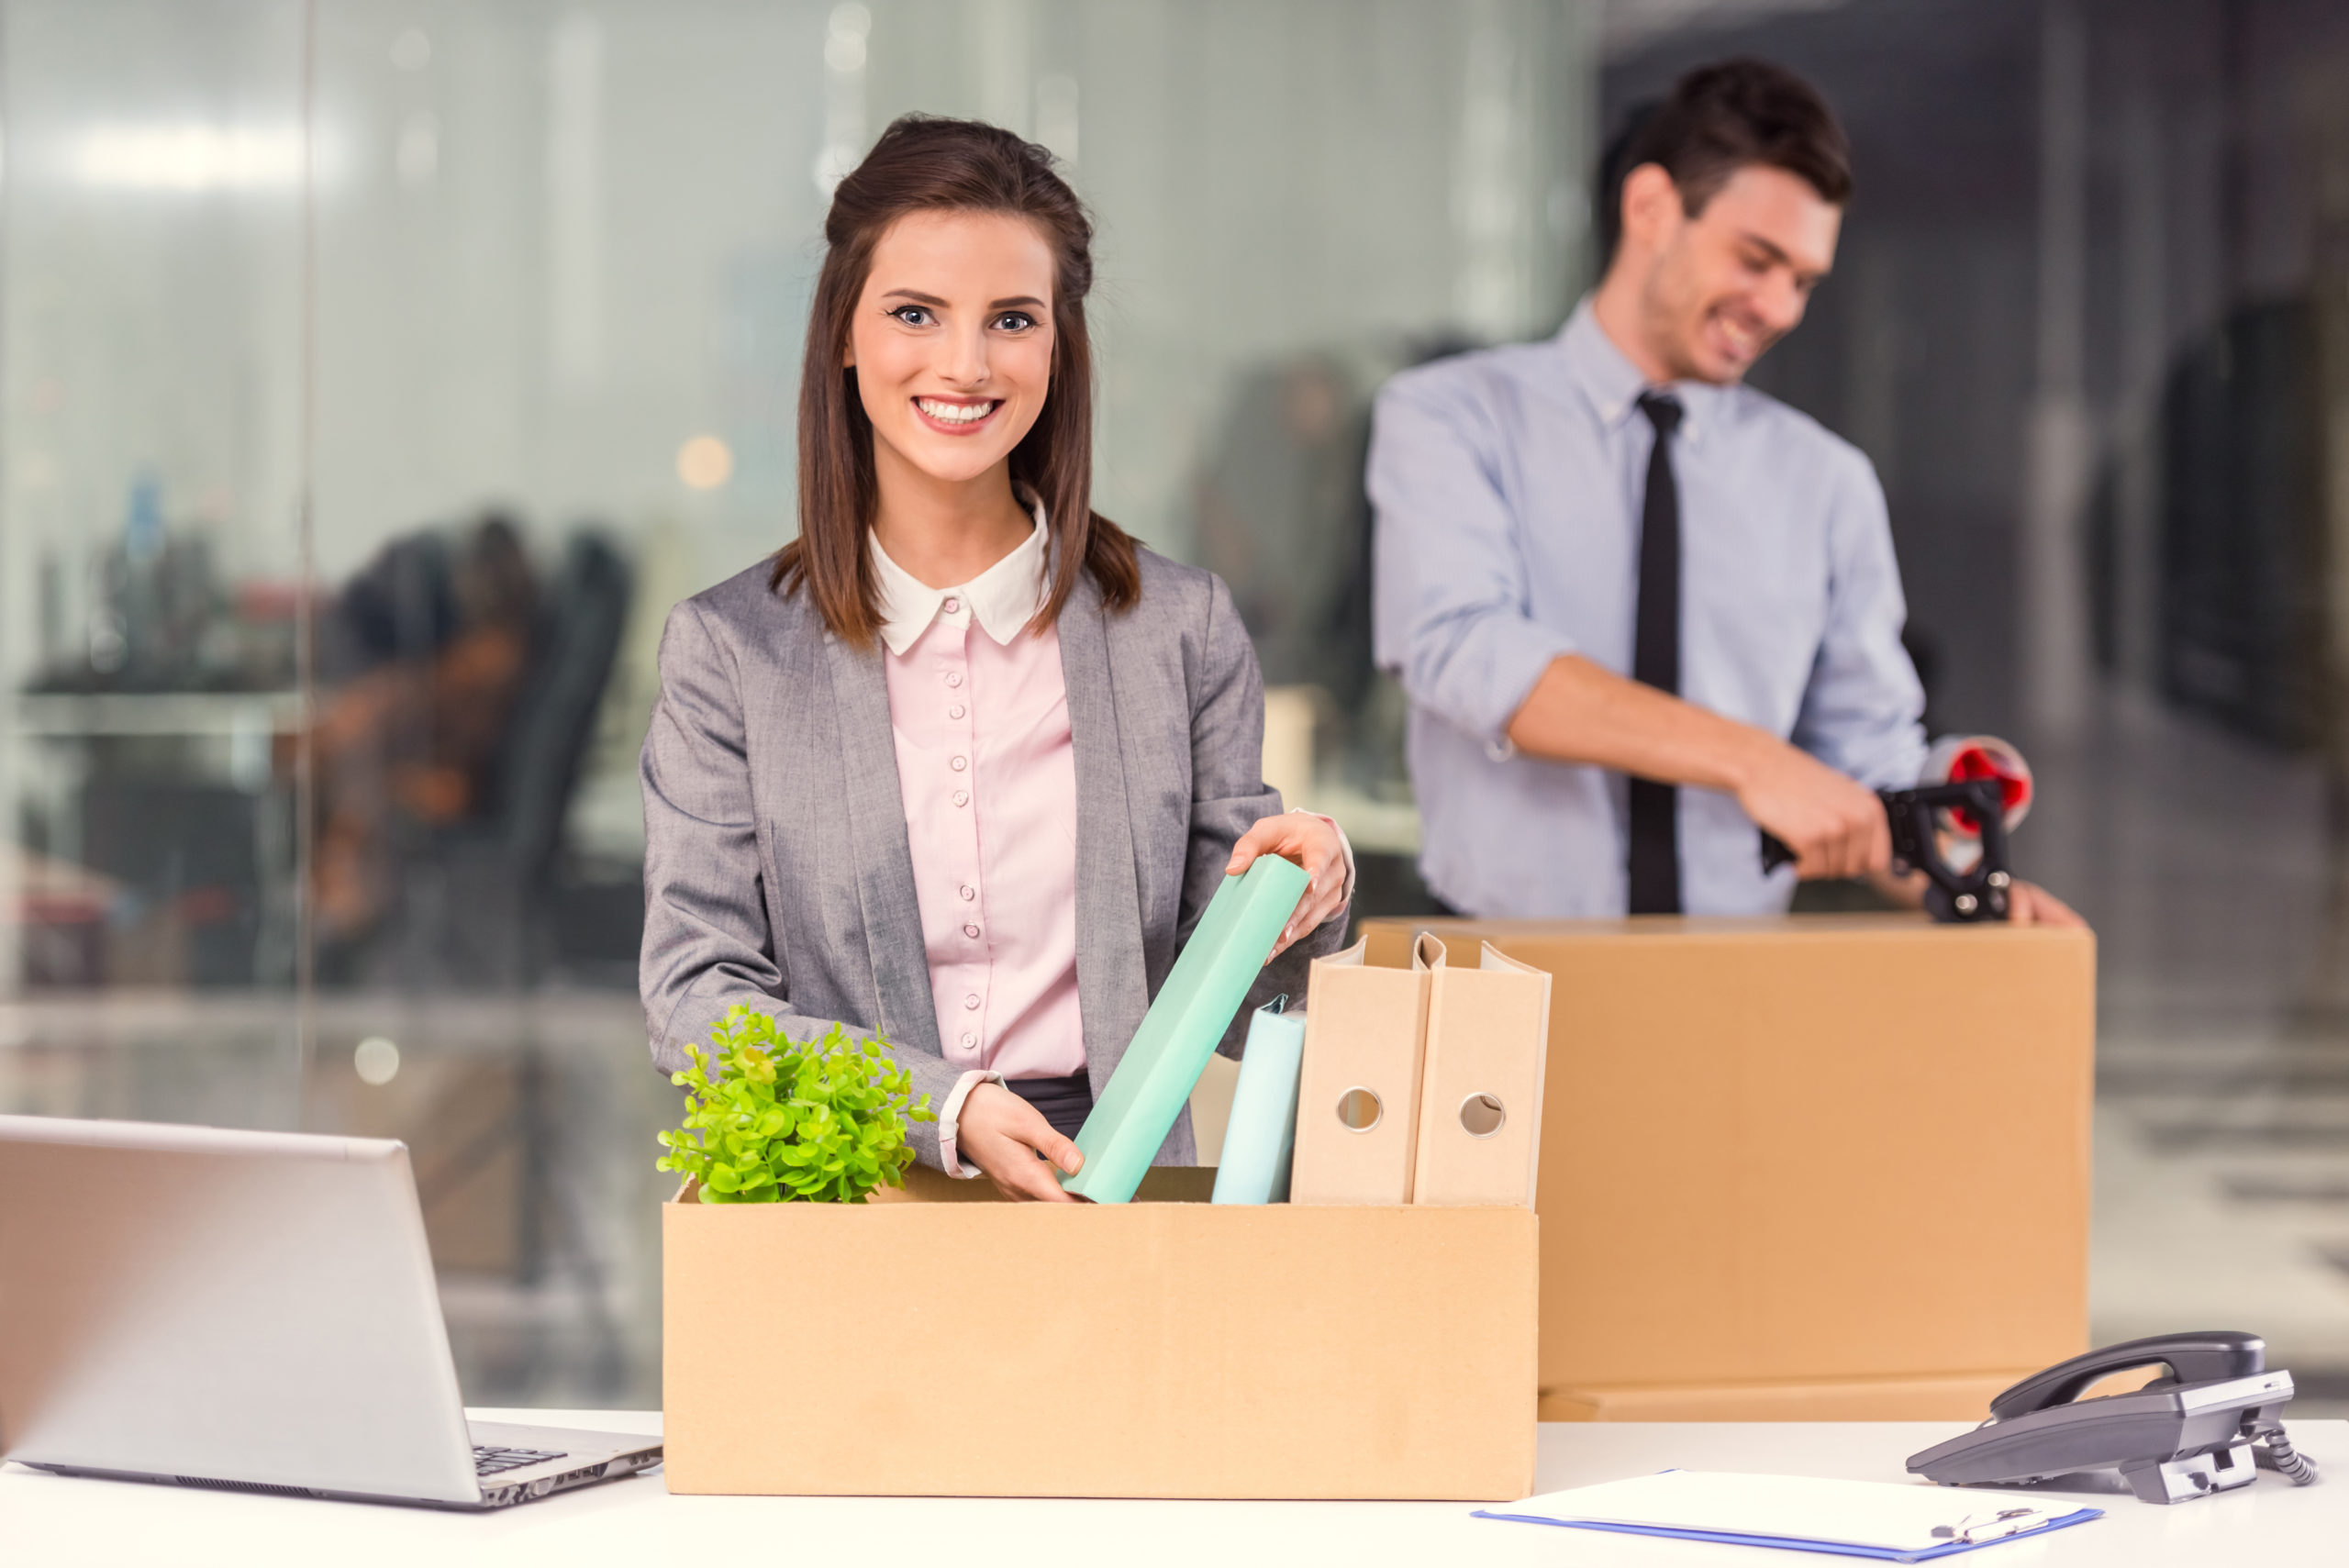 young-happy-businessman-business-woman-boxes-339457076